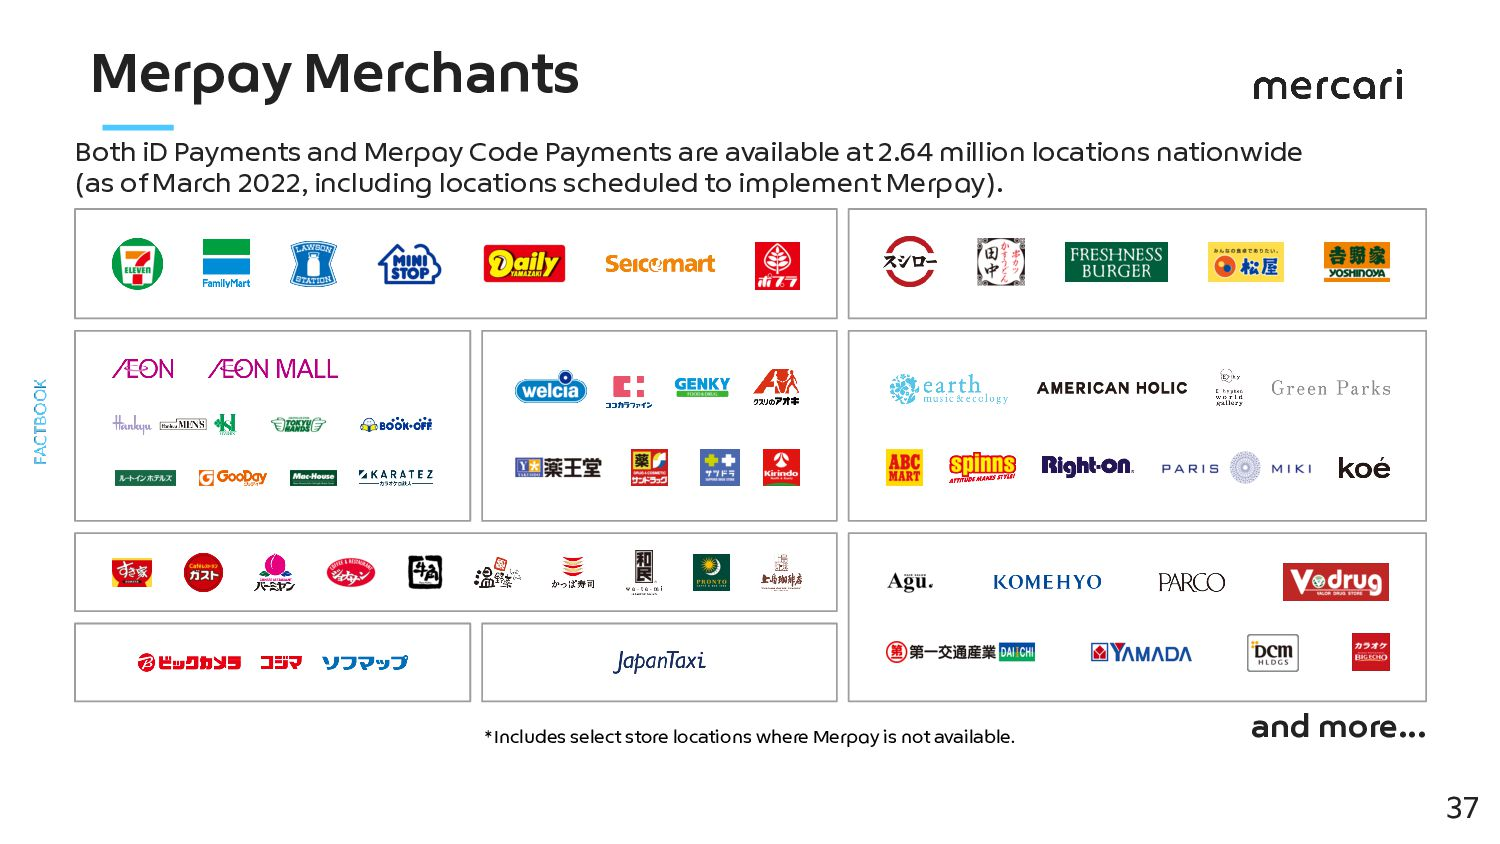 Growth of Features/Services Since Merpay's Laun...